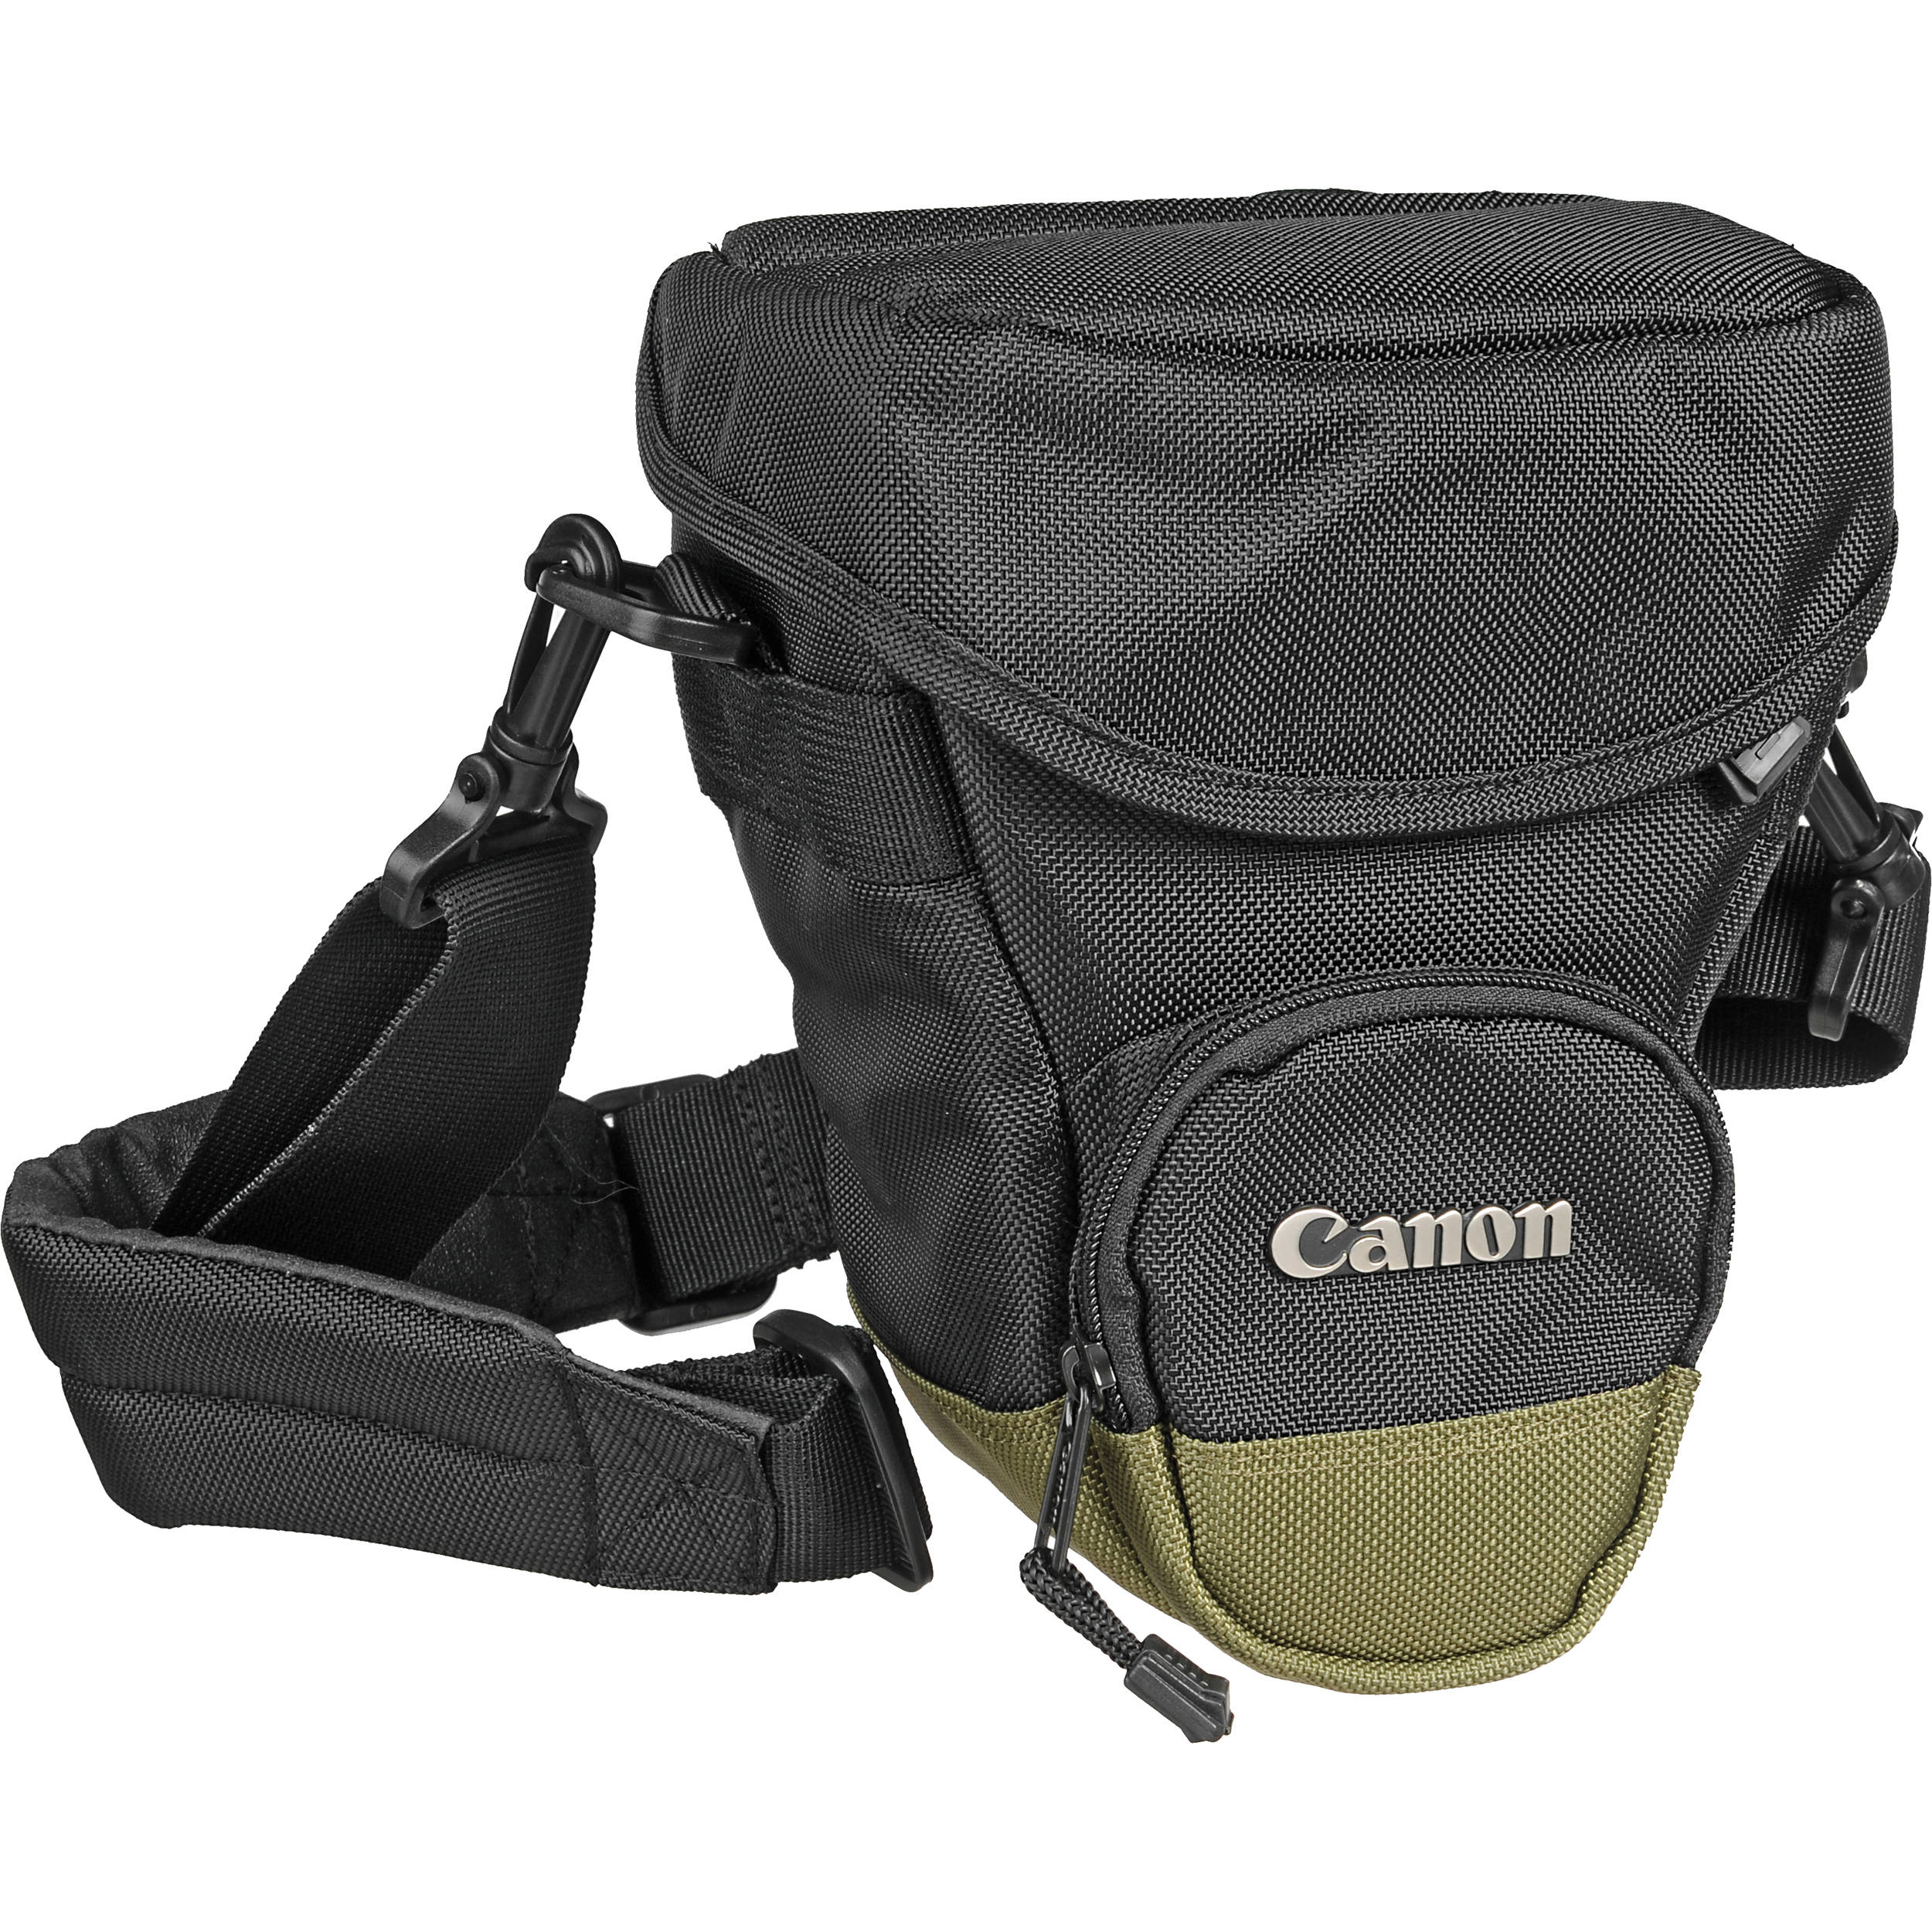 Holster Cases Bh Photo Video Manfrotto Mb Ma H M Canon Zoom Pack 1000 Style Bag Black Olive Green Trim